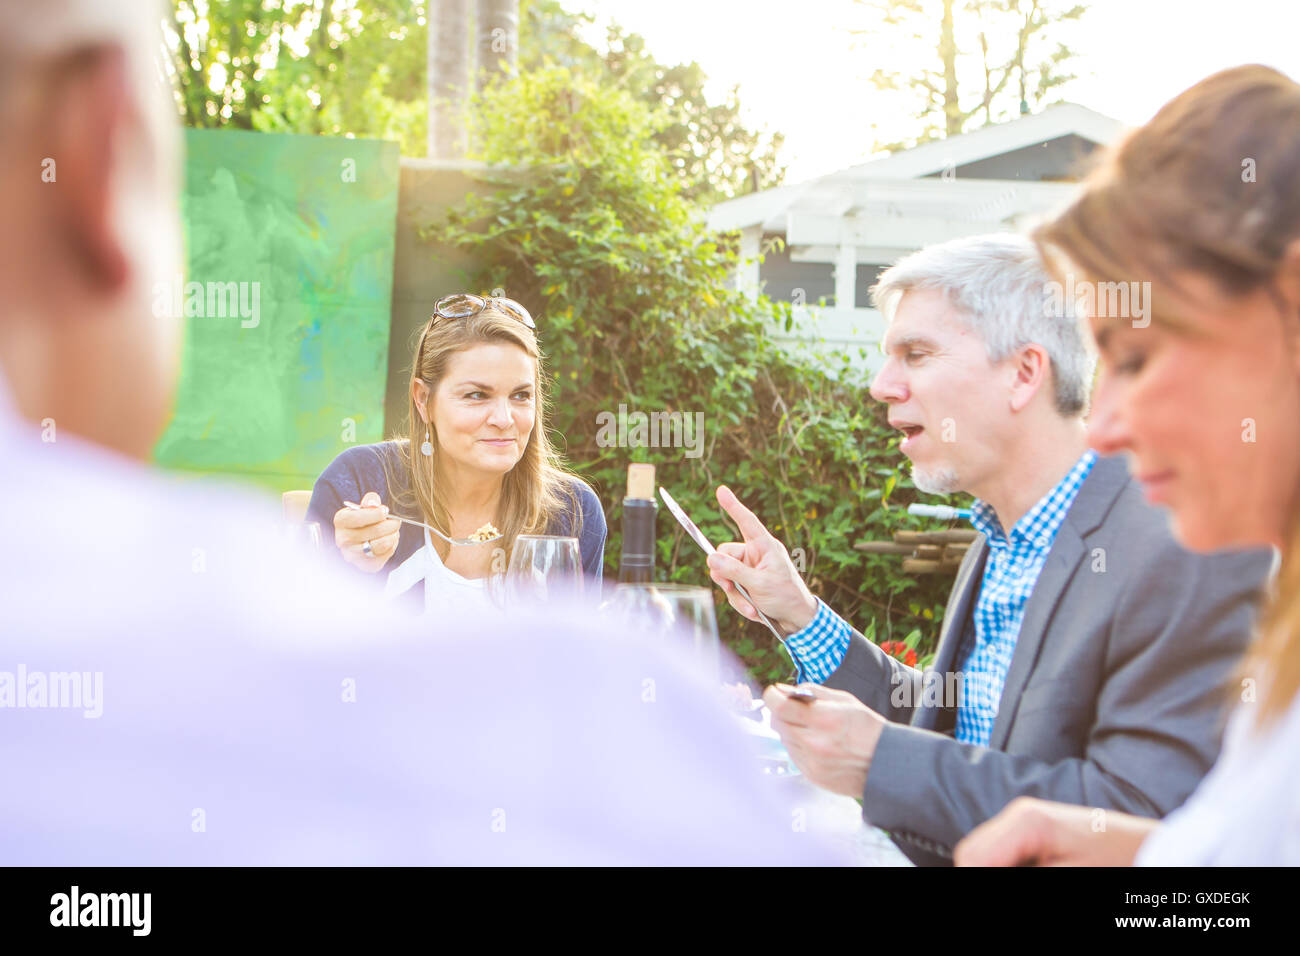 Mature adults eating and talking together at garden party table - Stock Image